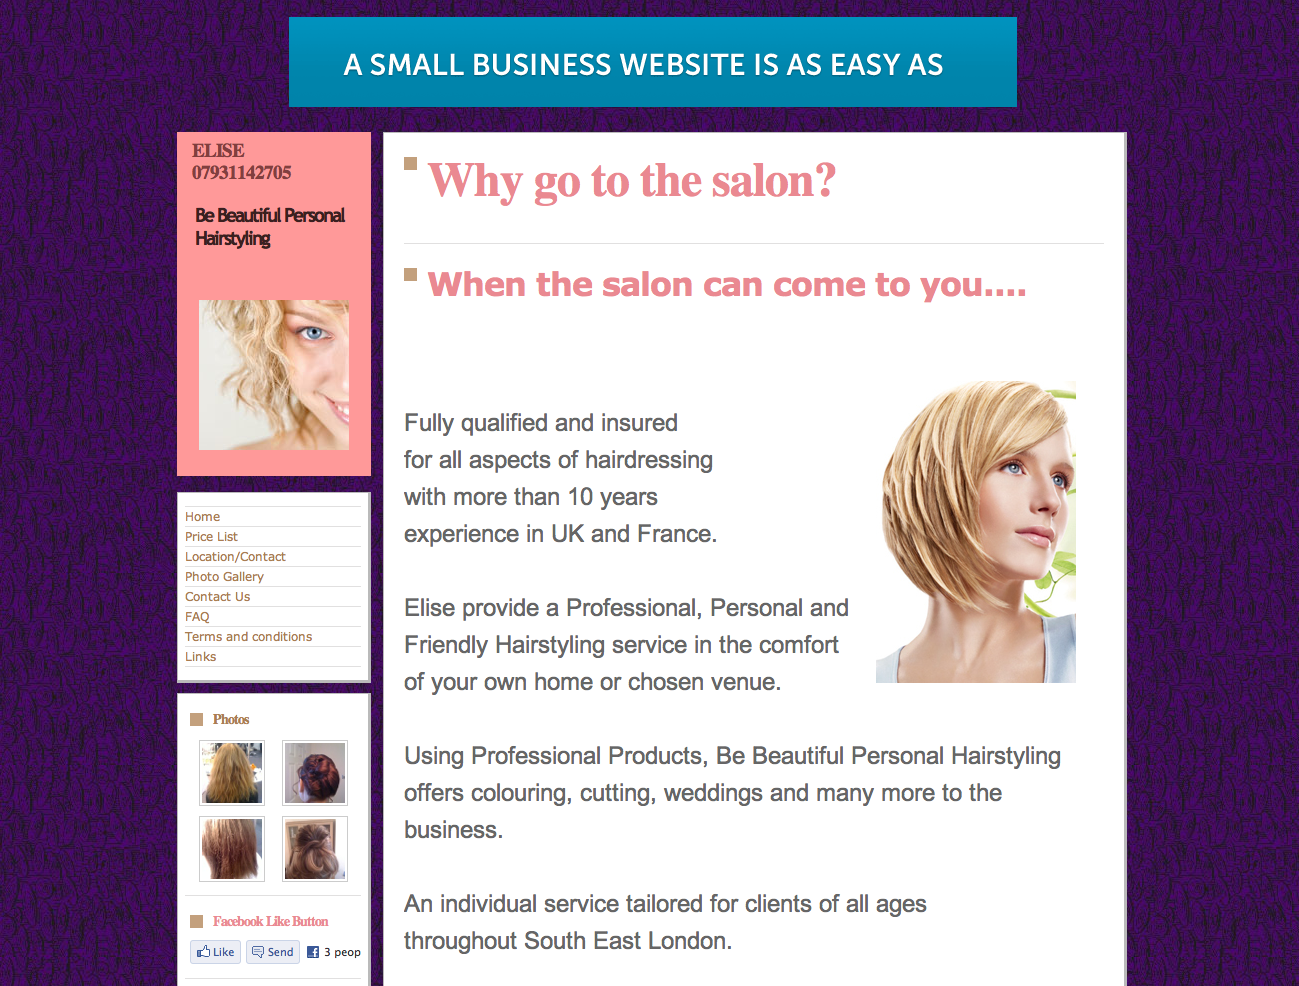 Be Beautiful Personal Hairstyling